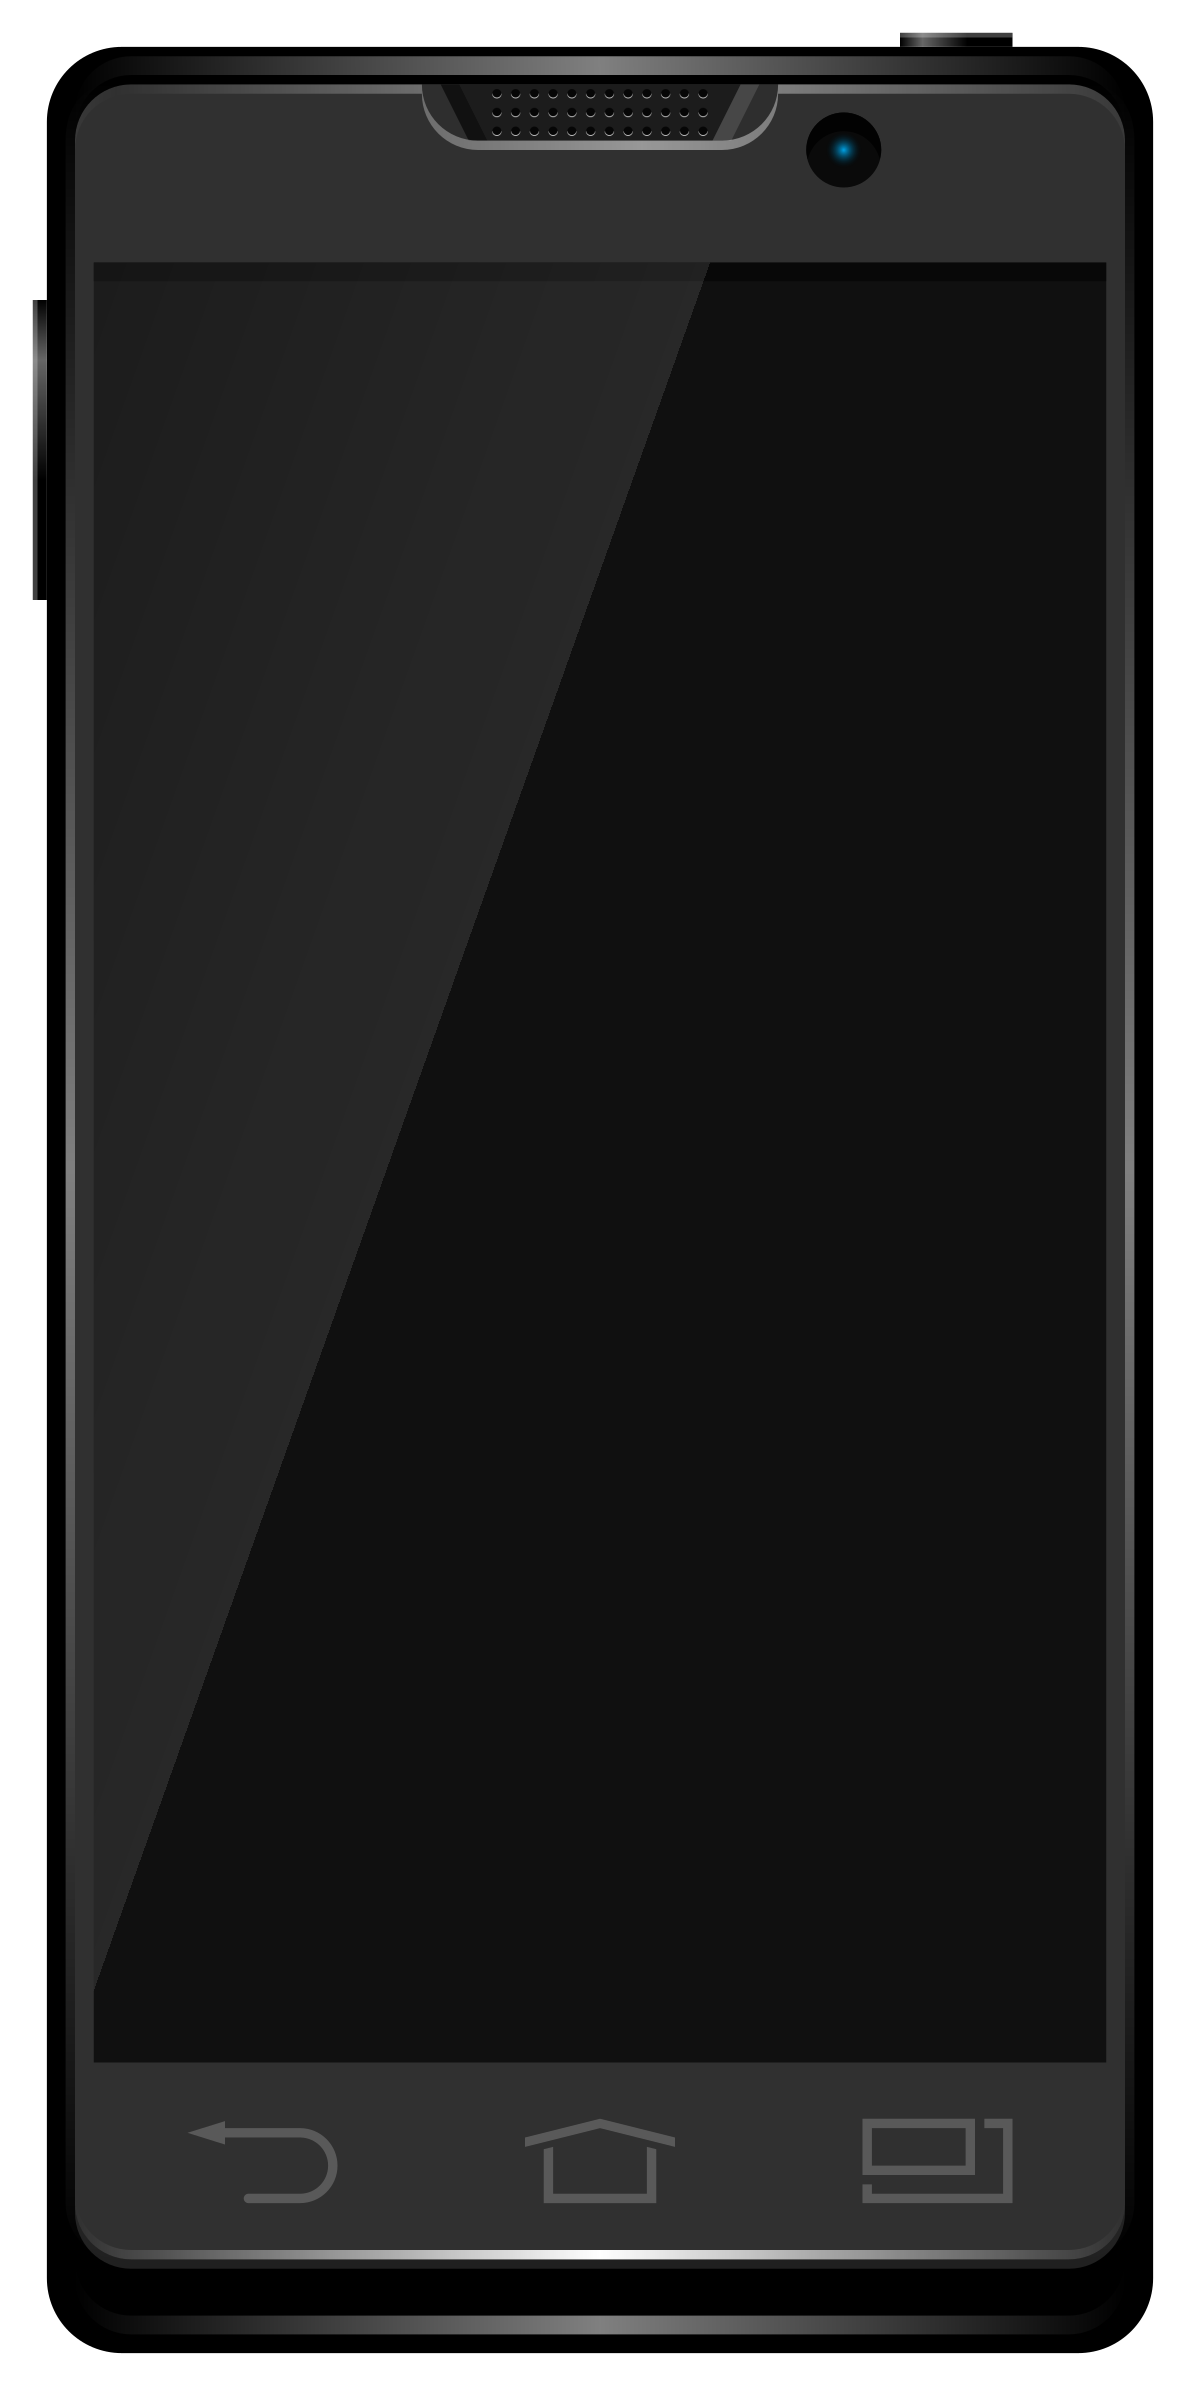 Smartphone (layered) by usr_share